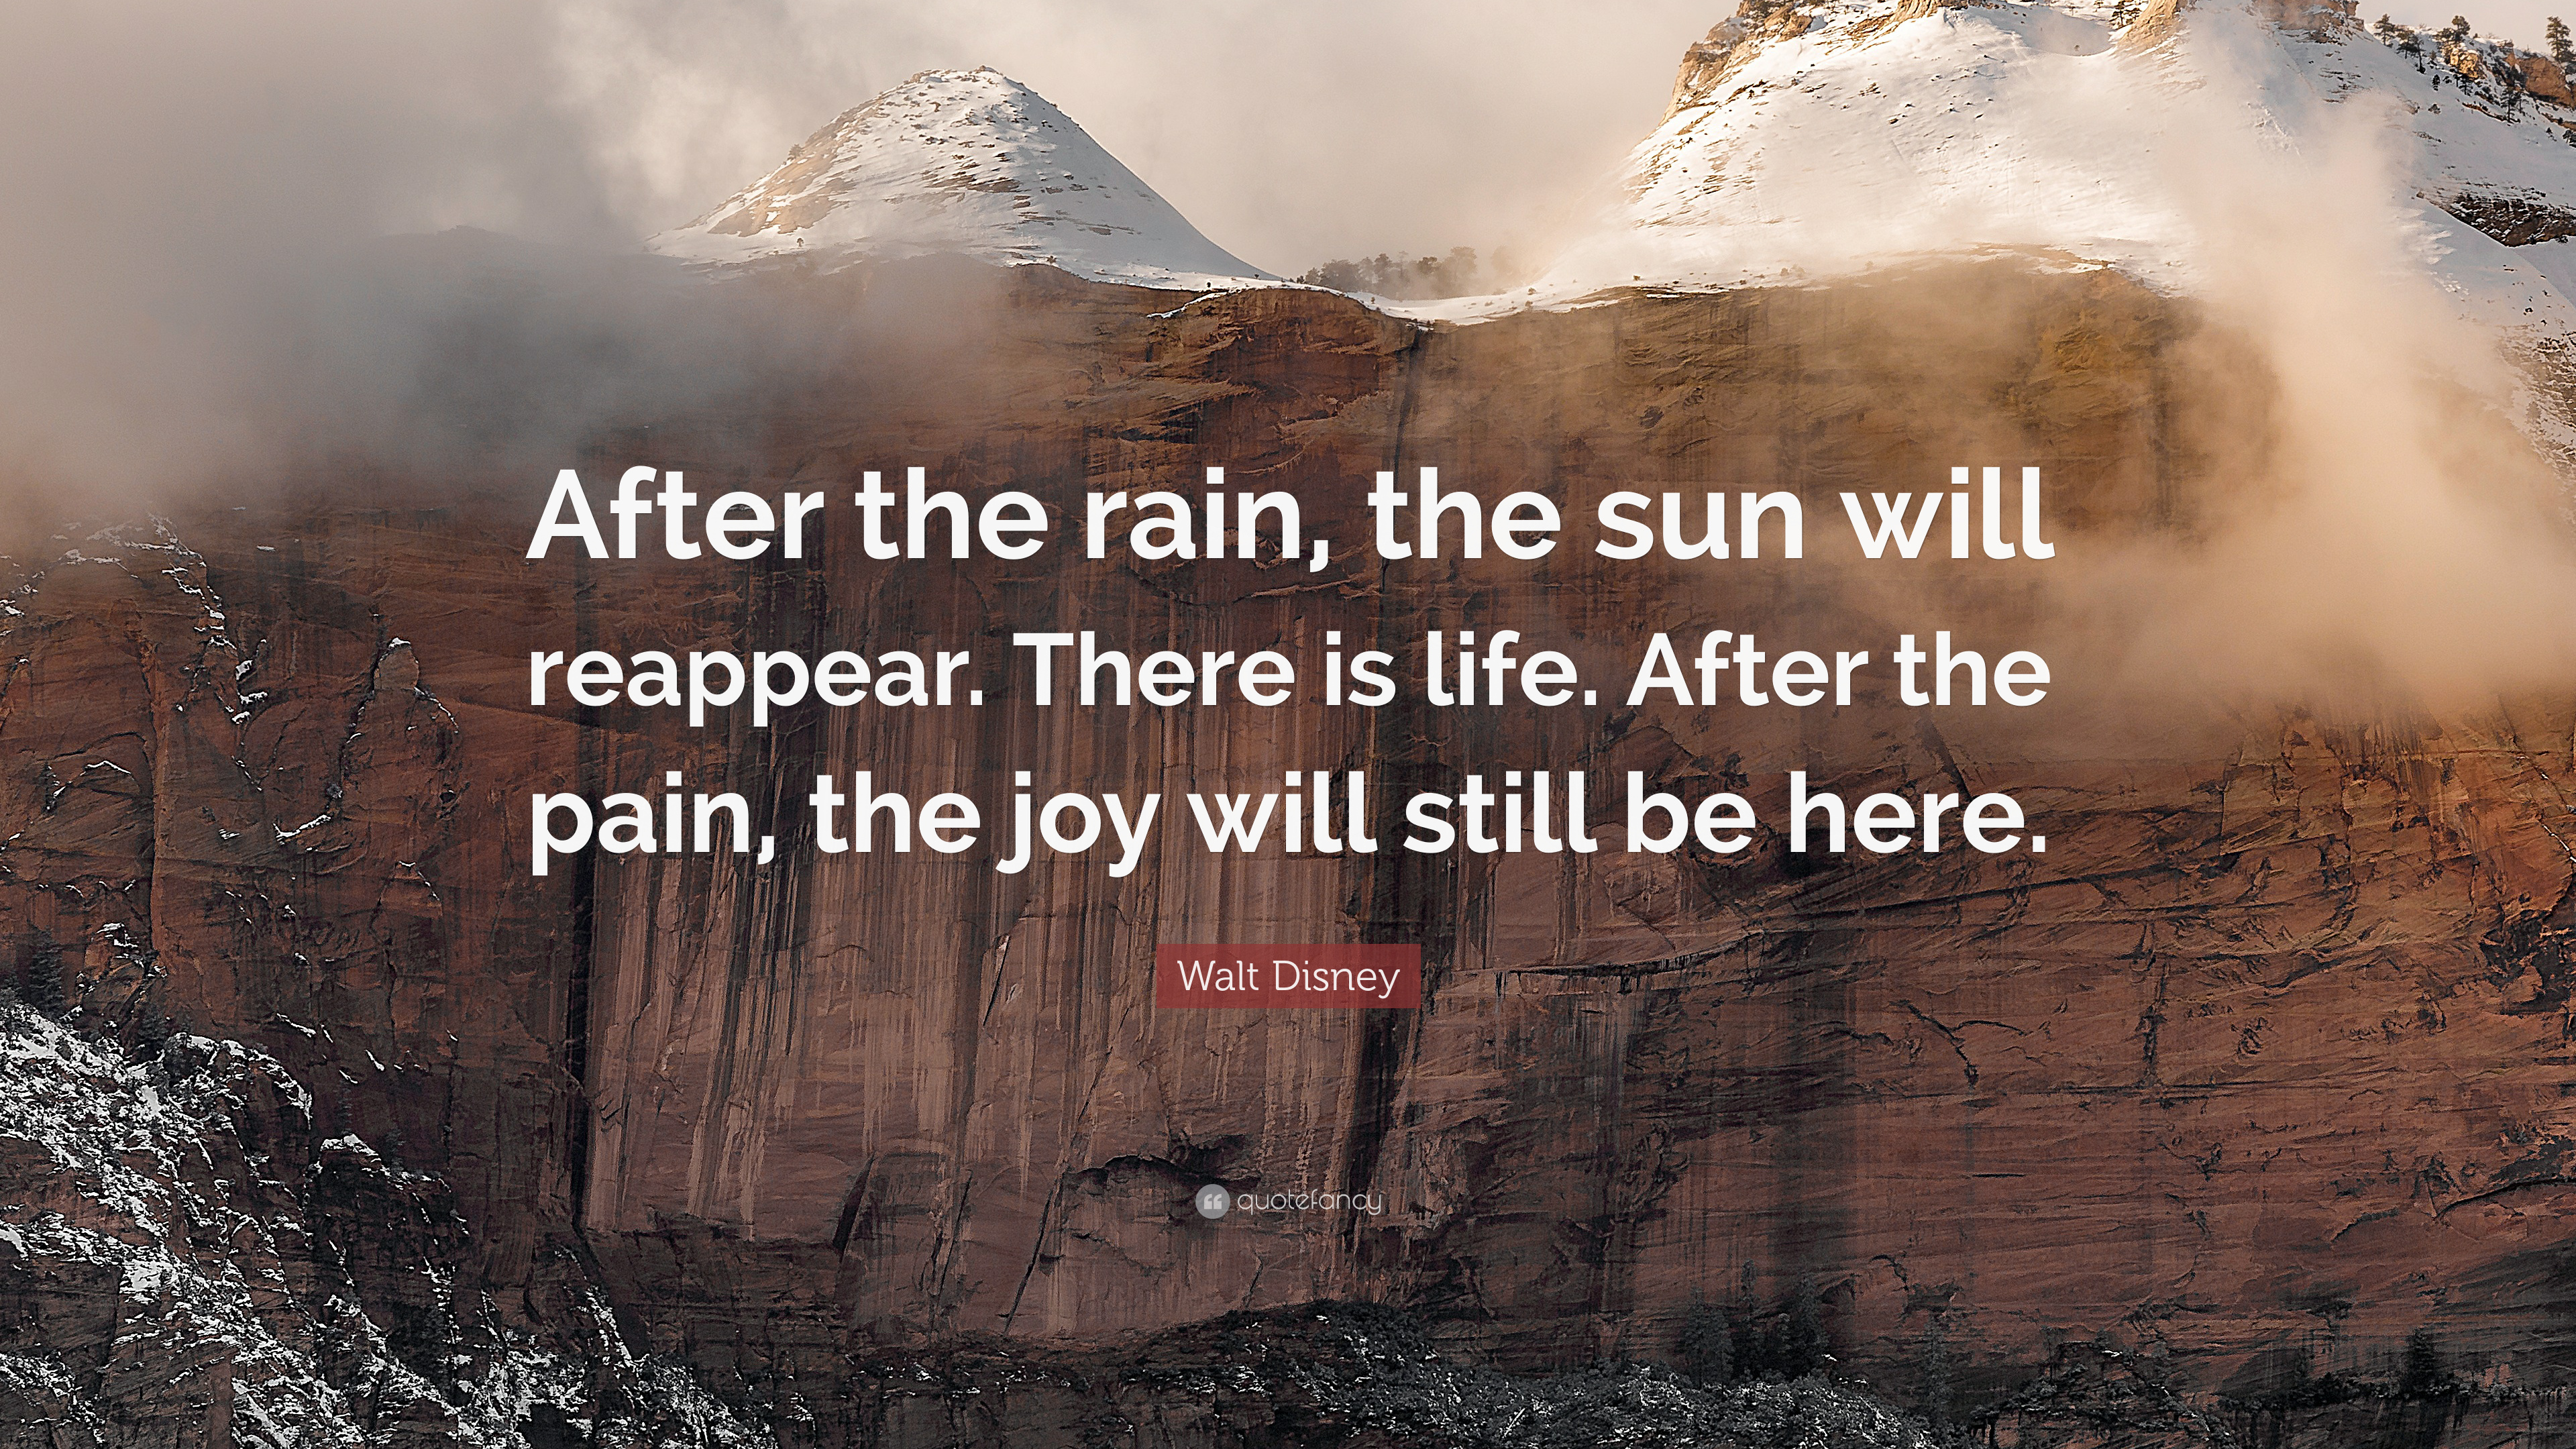 Walt Disney Quote After The Rain The Sun Will Reappear There Is